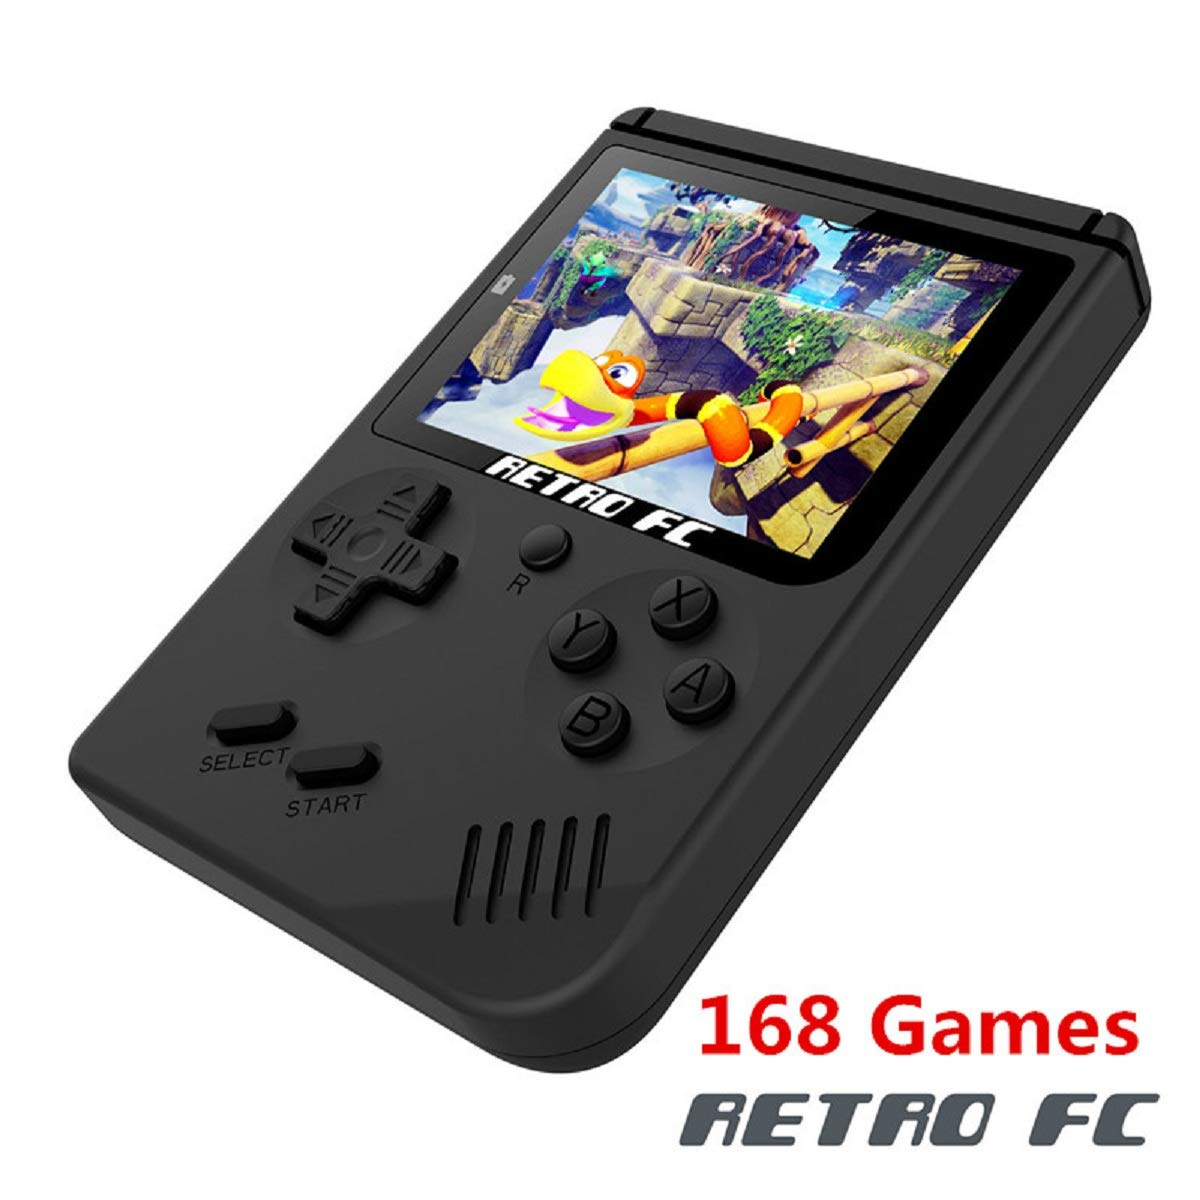 BAORUITENG Handheld Game Console, Retro FC Game Console,Video Game Console with 3 Inch 168 Classic Games (Black) by BAORUITENG (Image #1)